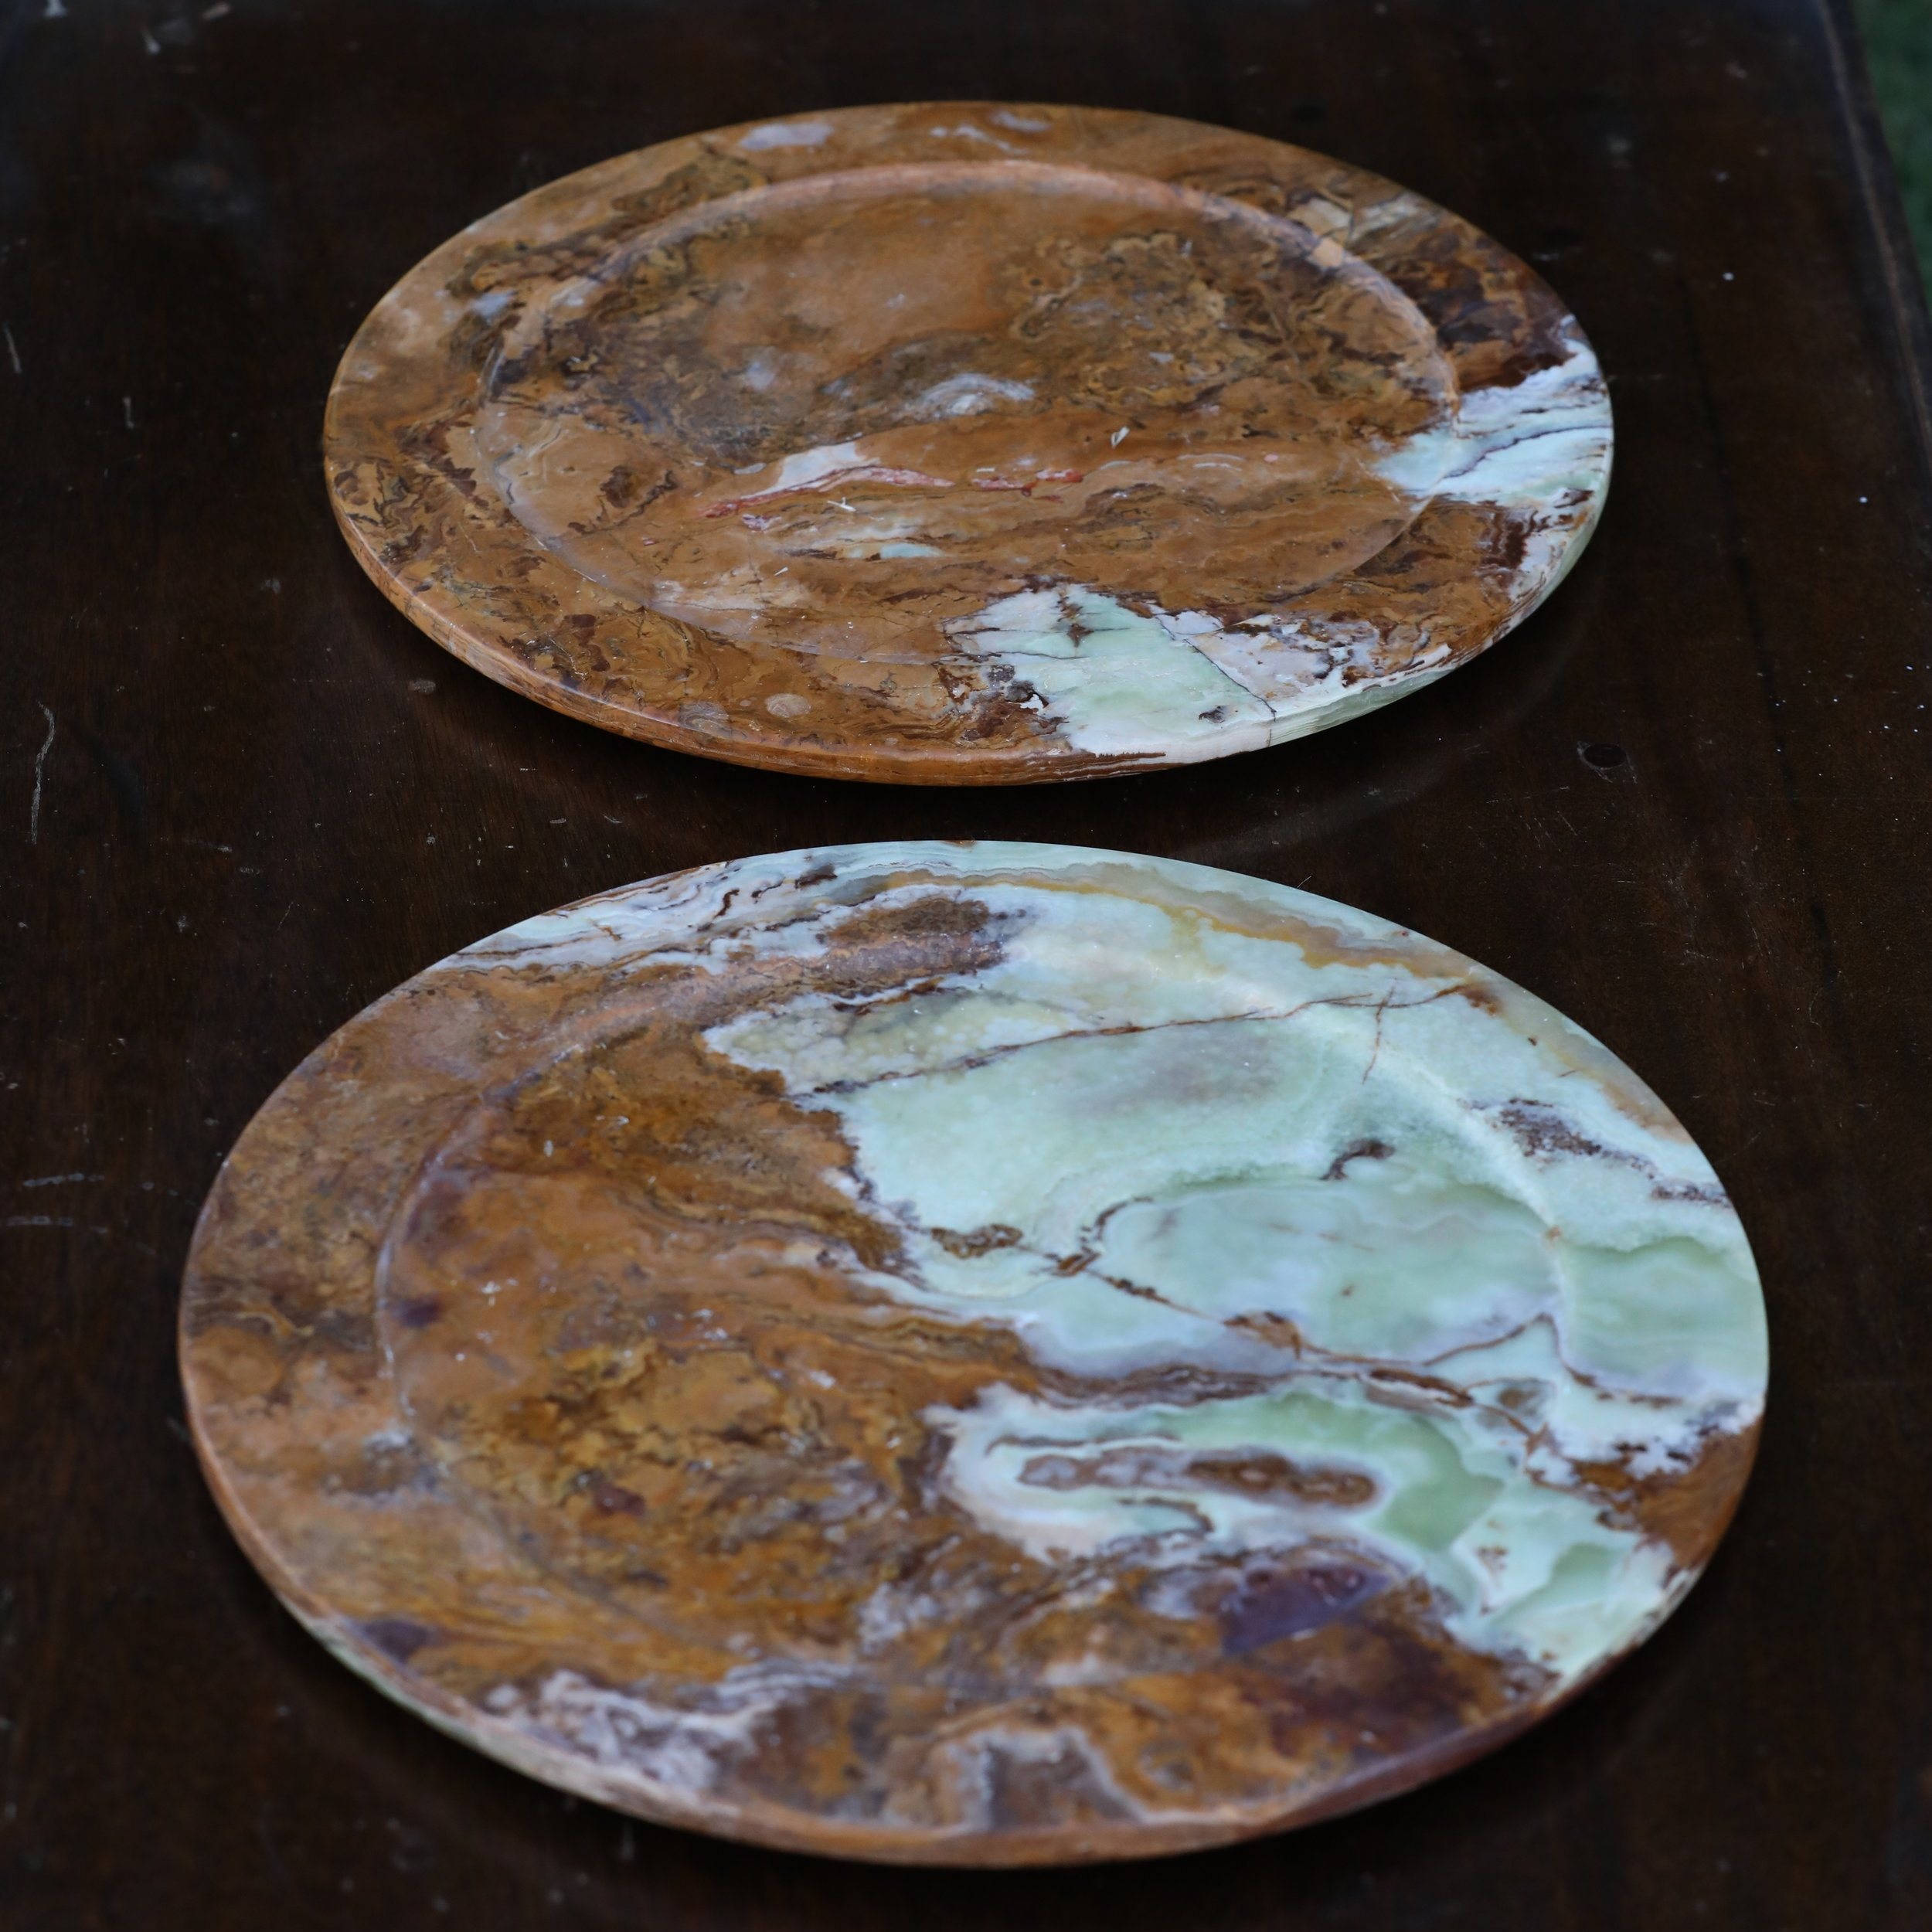 Mismatched granite stone charger plates. Varied colors. Wedding rentals in the Temecula Valley.